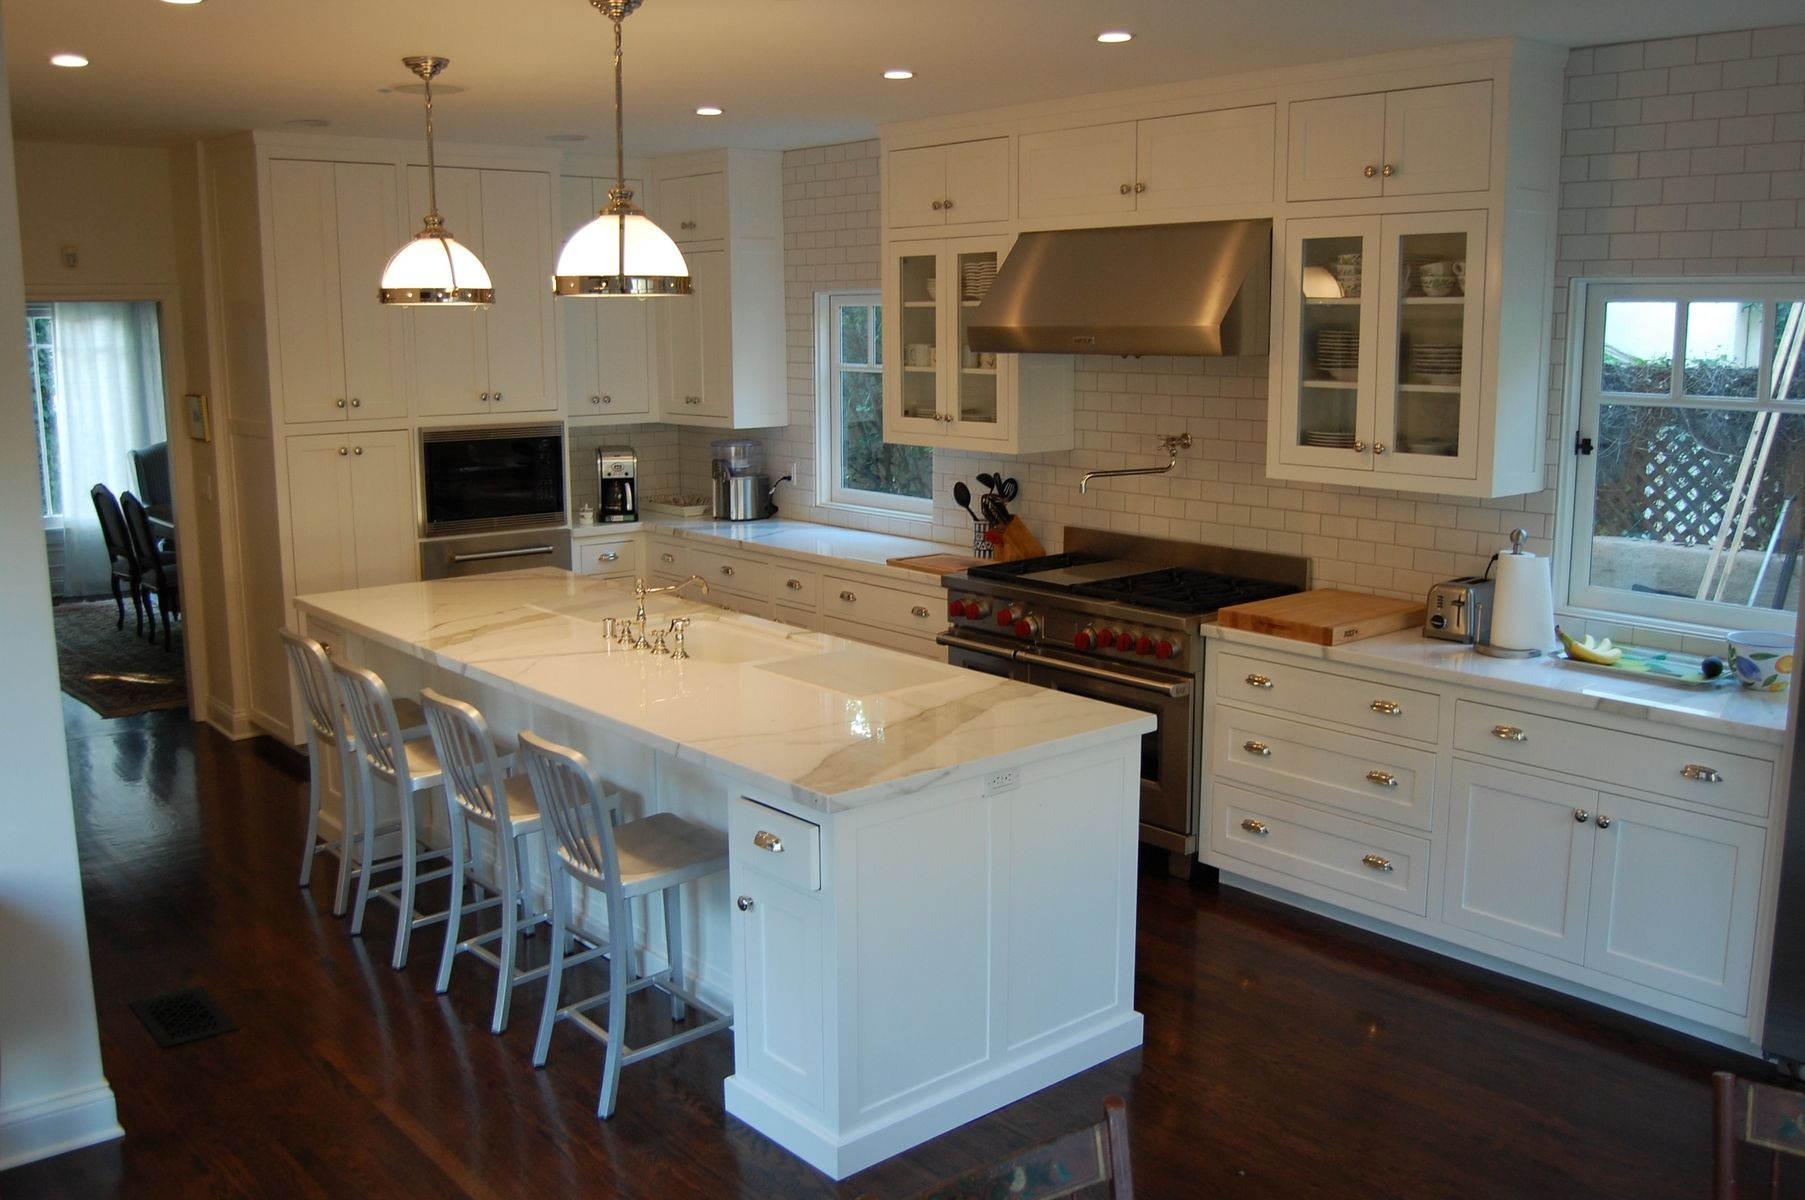 Custom Kitchen Cabinets CustomMadecom - Custom kitchen cabinets design